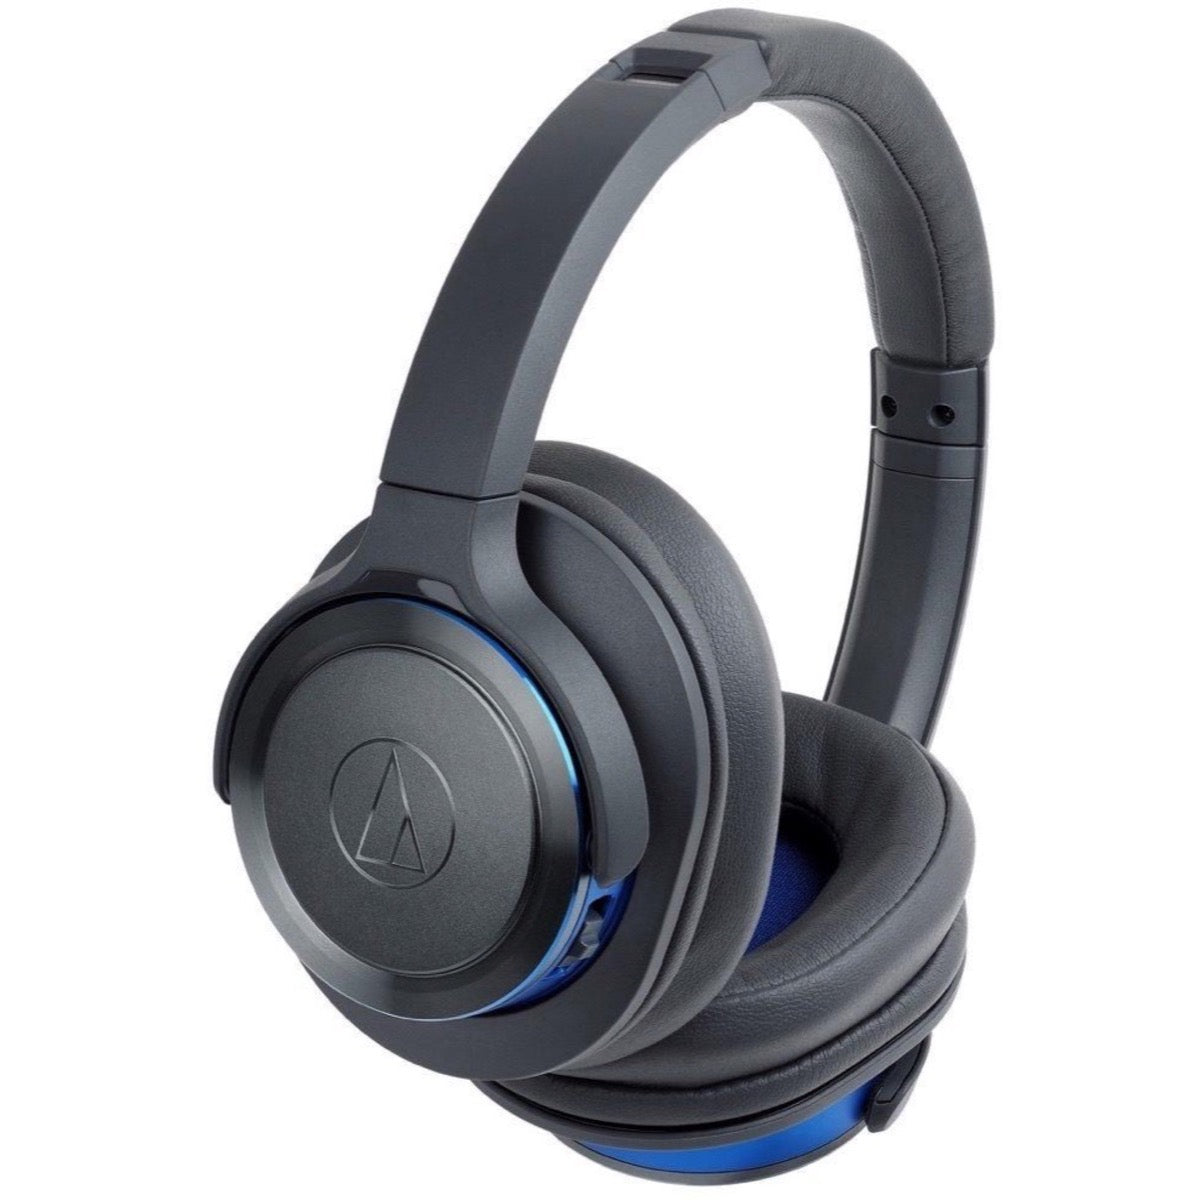 Audio-Technica ATH-WS660BT Wireless Bluetooth Headphones, Gray Matte and Blue